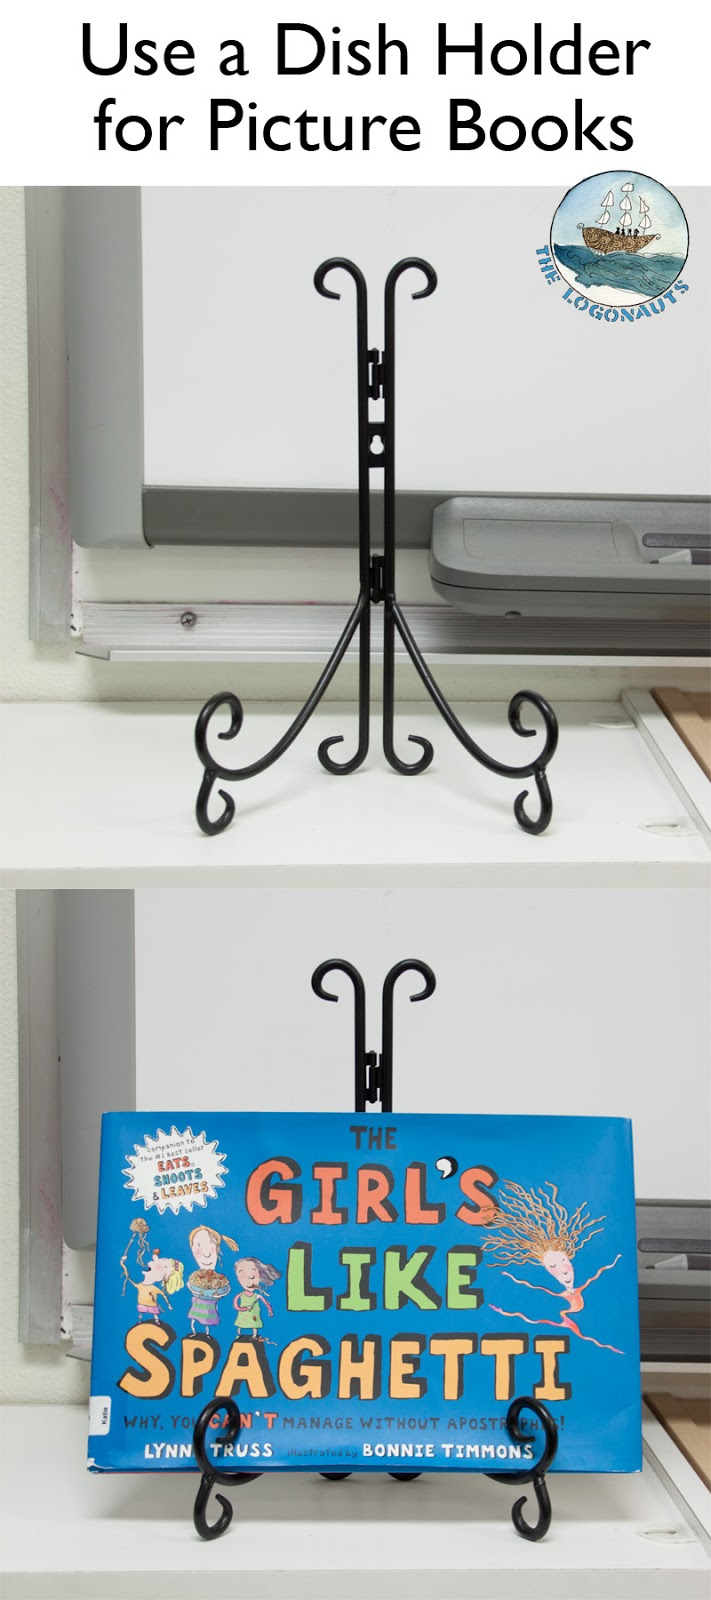 Use a Dish Holder for Picture Books - Organizing a Classroom Library | The Logonauts